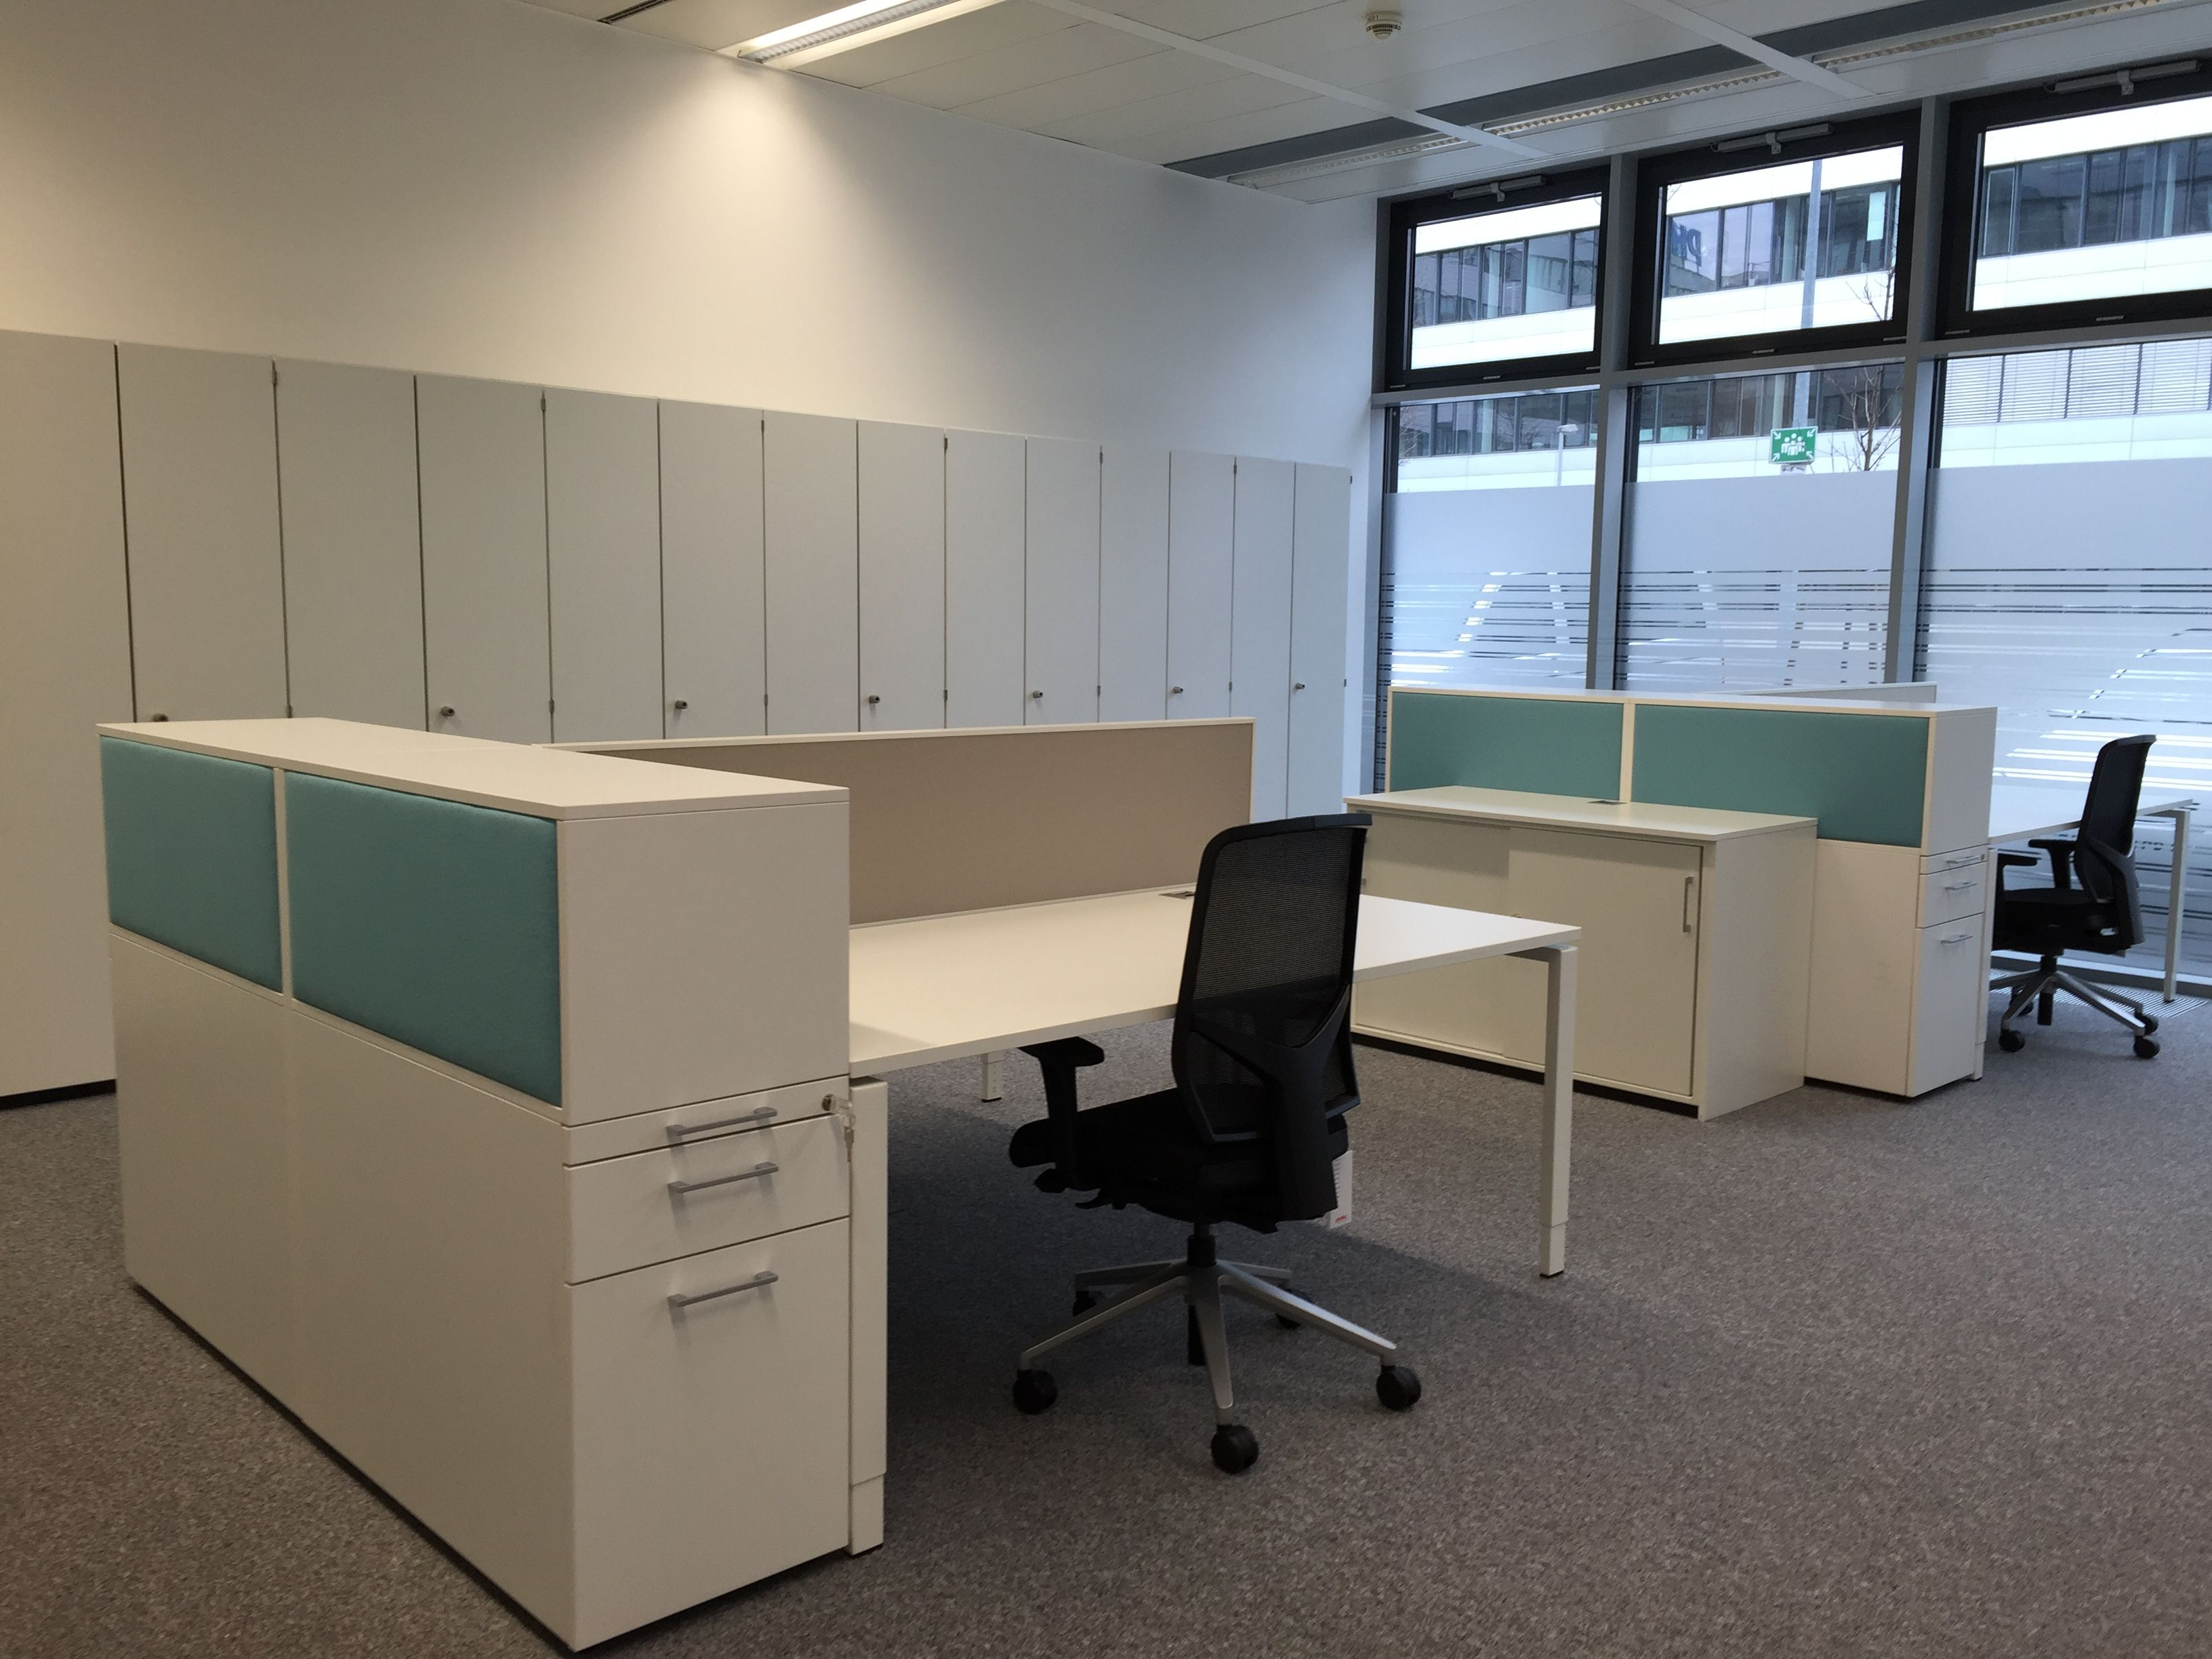 Hochcontainer mit Akustikelement by kühnle\'waiko #office #furniture ...